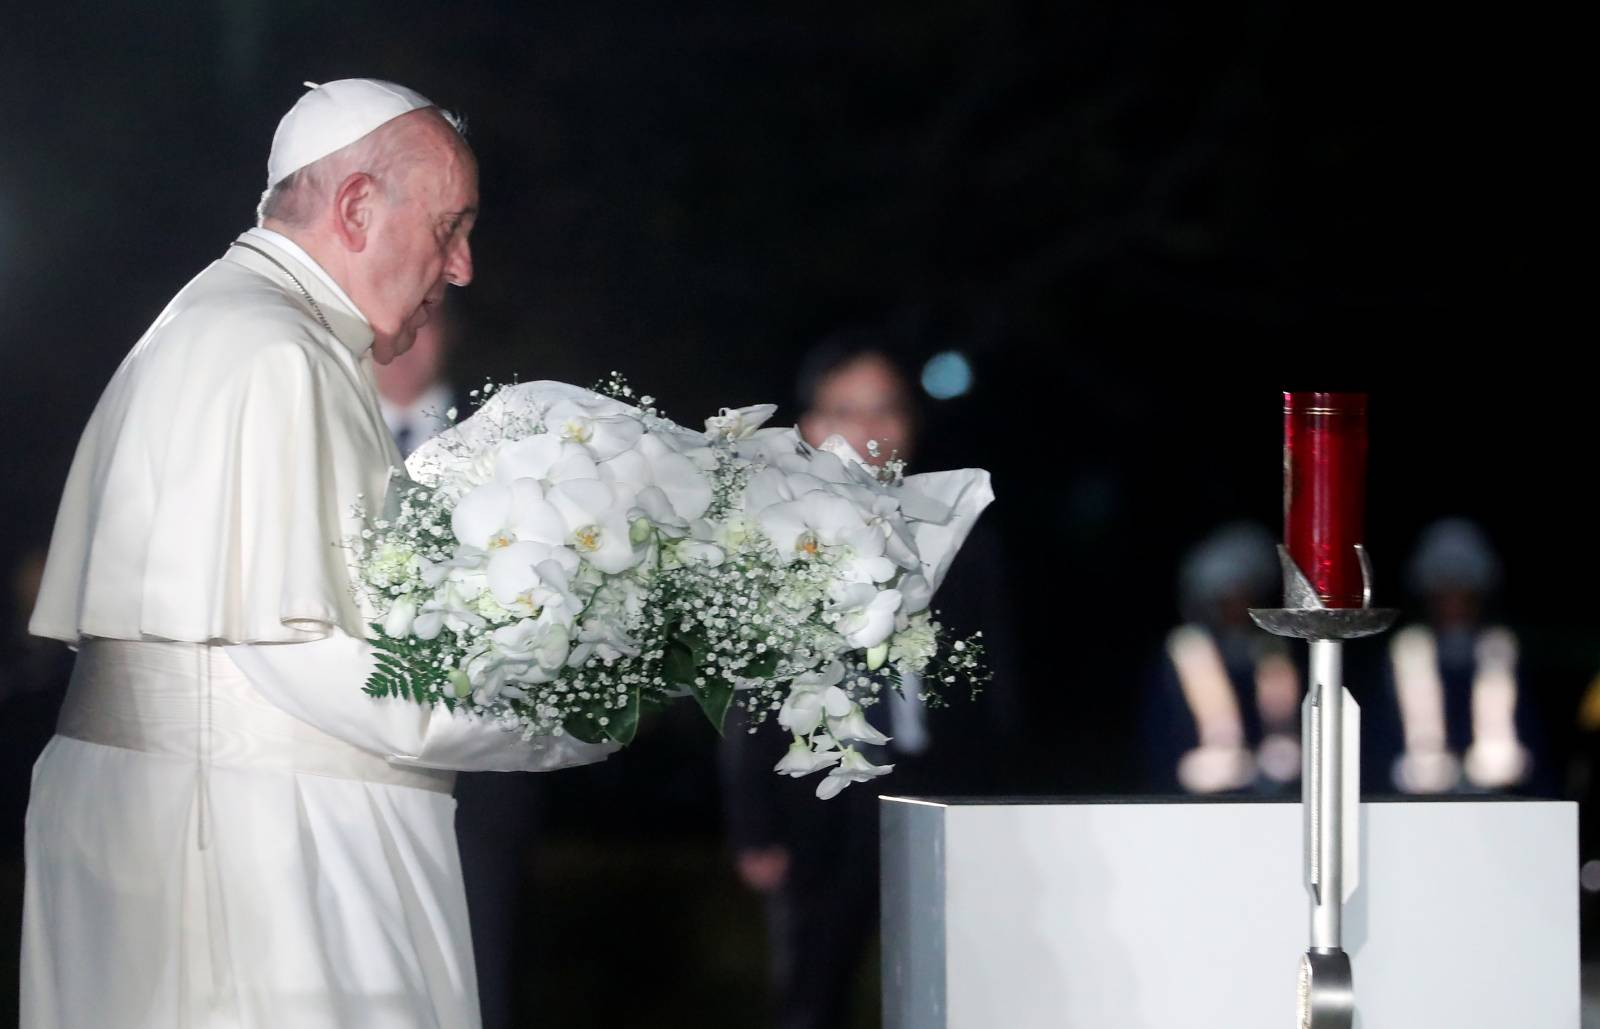 Pope Francis visits Japan